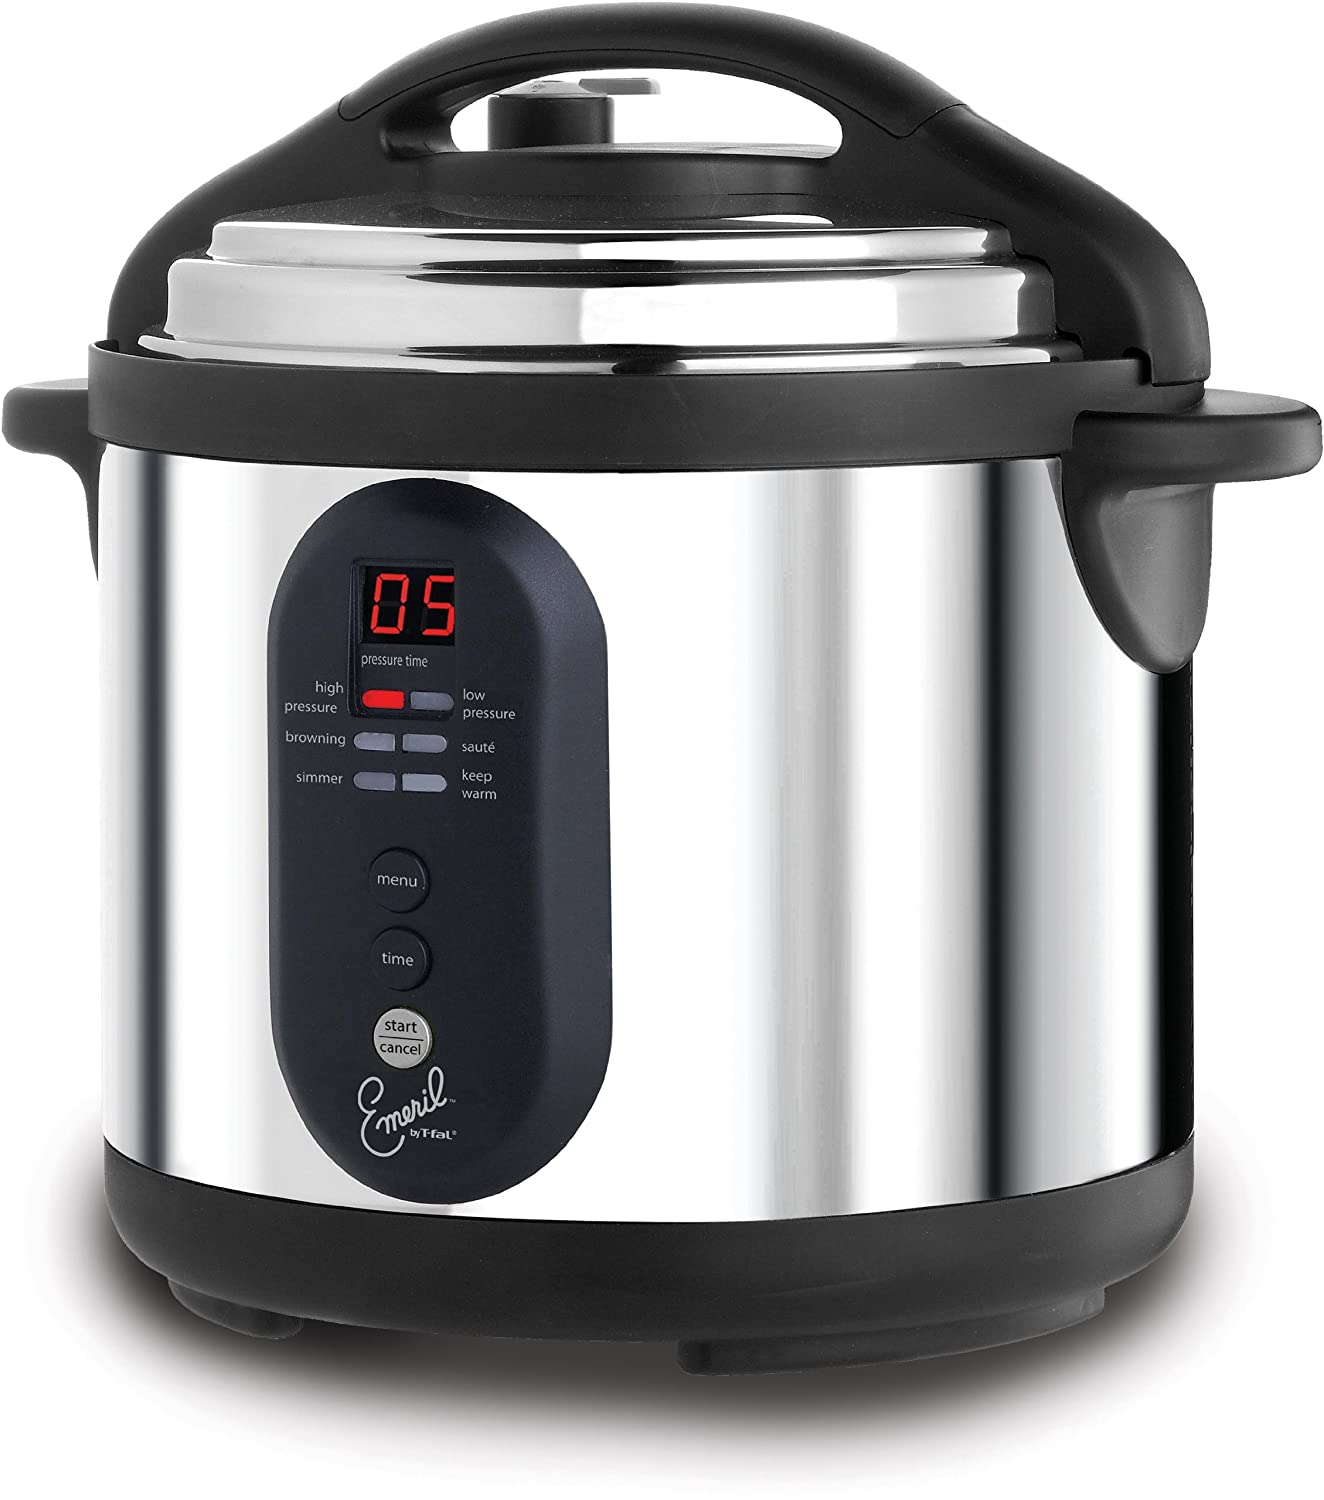 Emeril by T-fal CY4000 Nonstick Dishwasher Safe Electric Pressure Cooker, 6-Quart, Silver